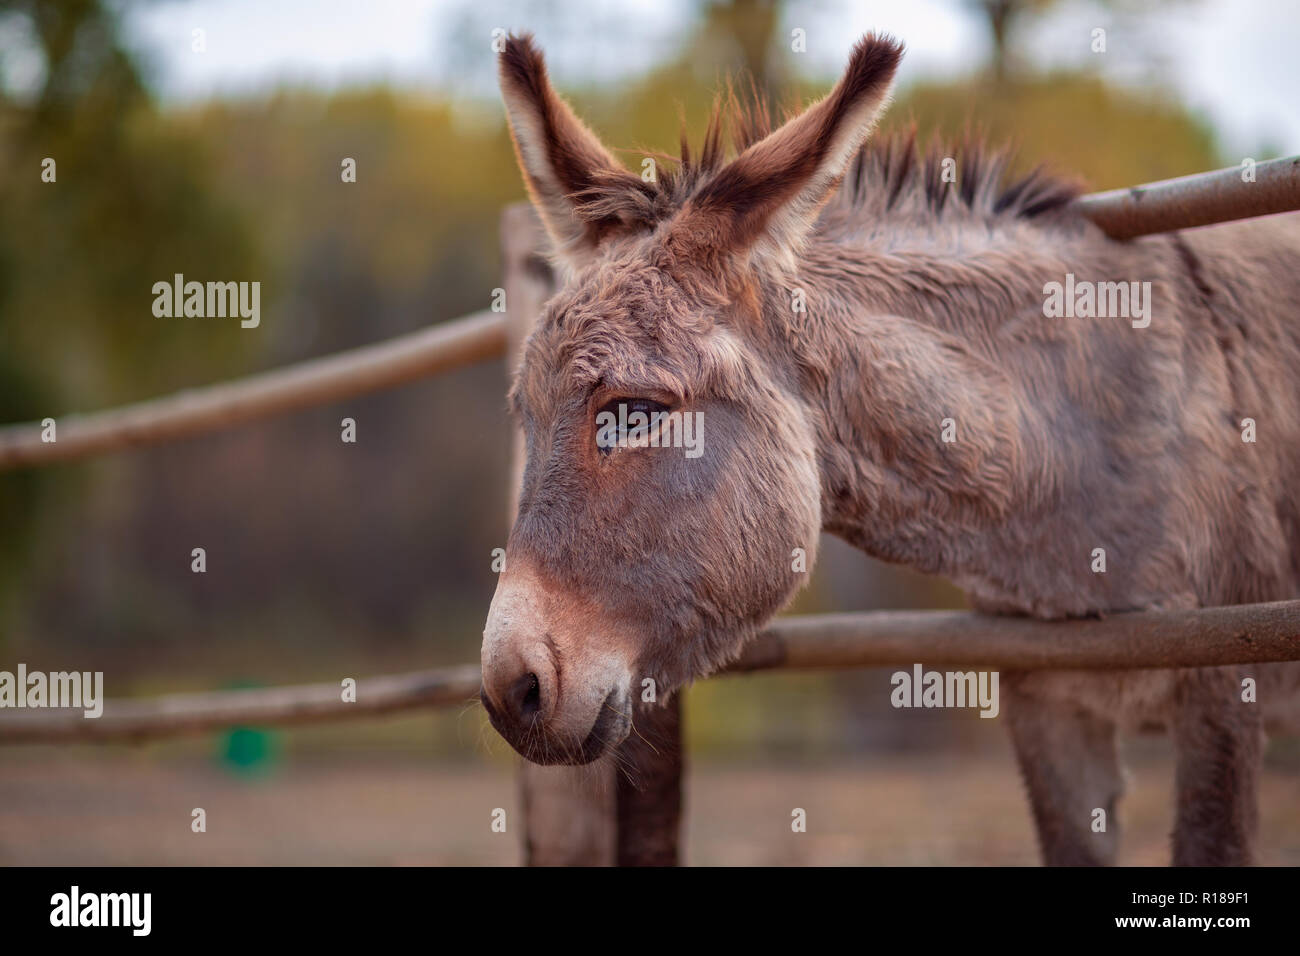 Beautiful Friendly brown donkey outdoors in farm - Stock Image